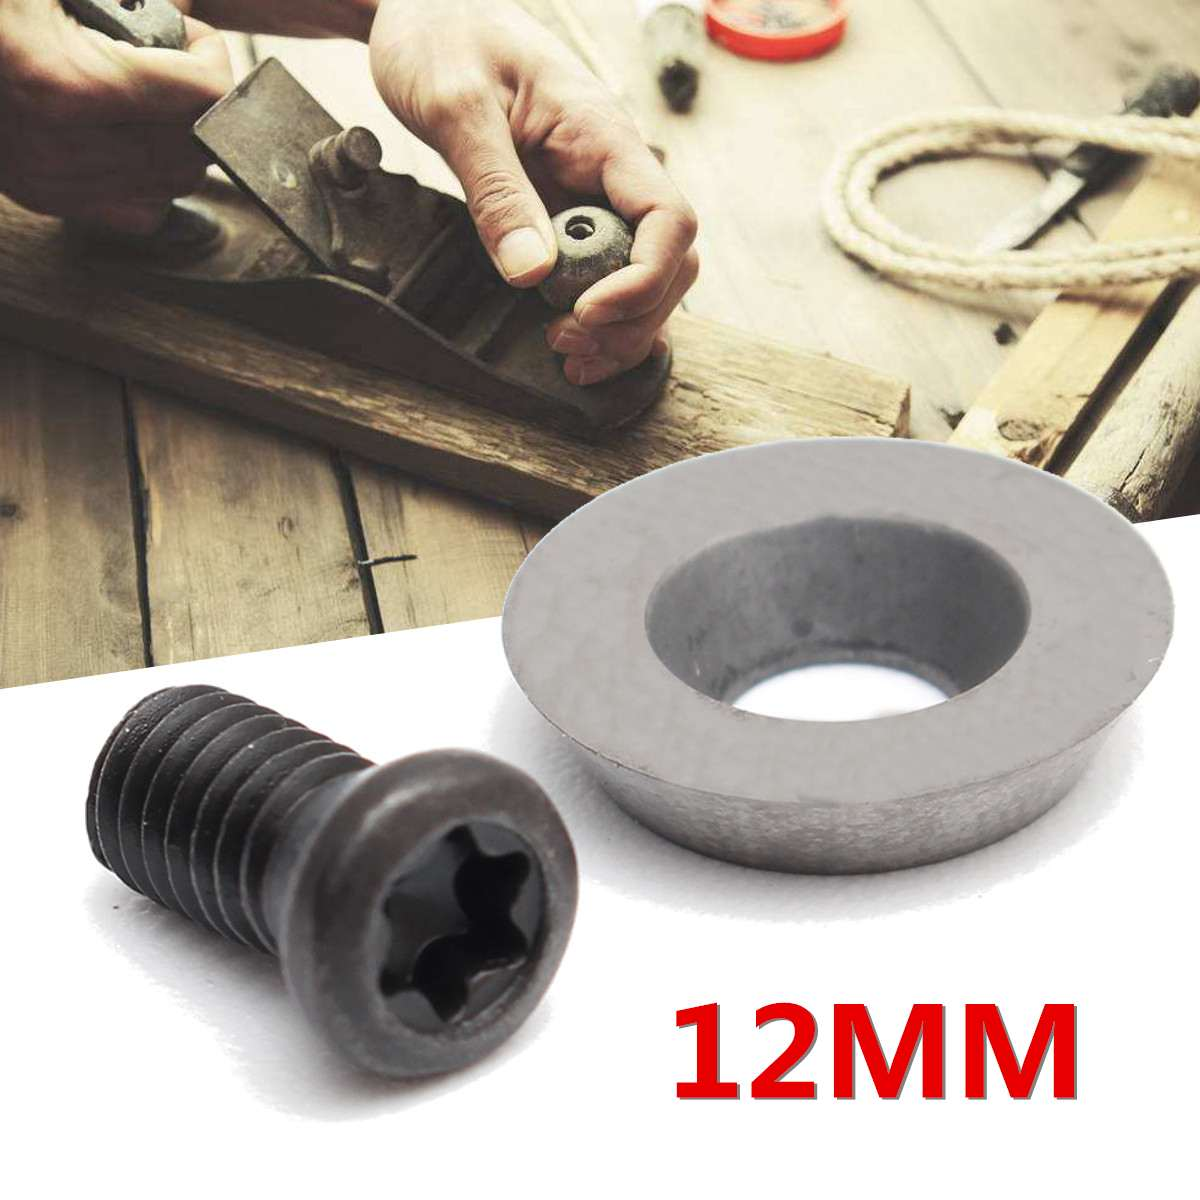 10Pcs 12mm Round Carbide Insert Cutter With Screws For Ci3 Wood Turning Tool